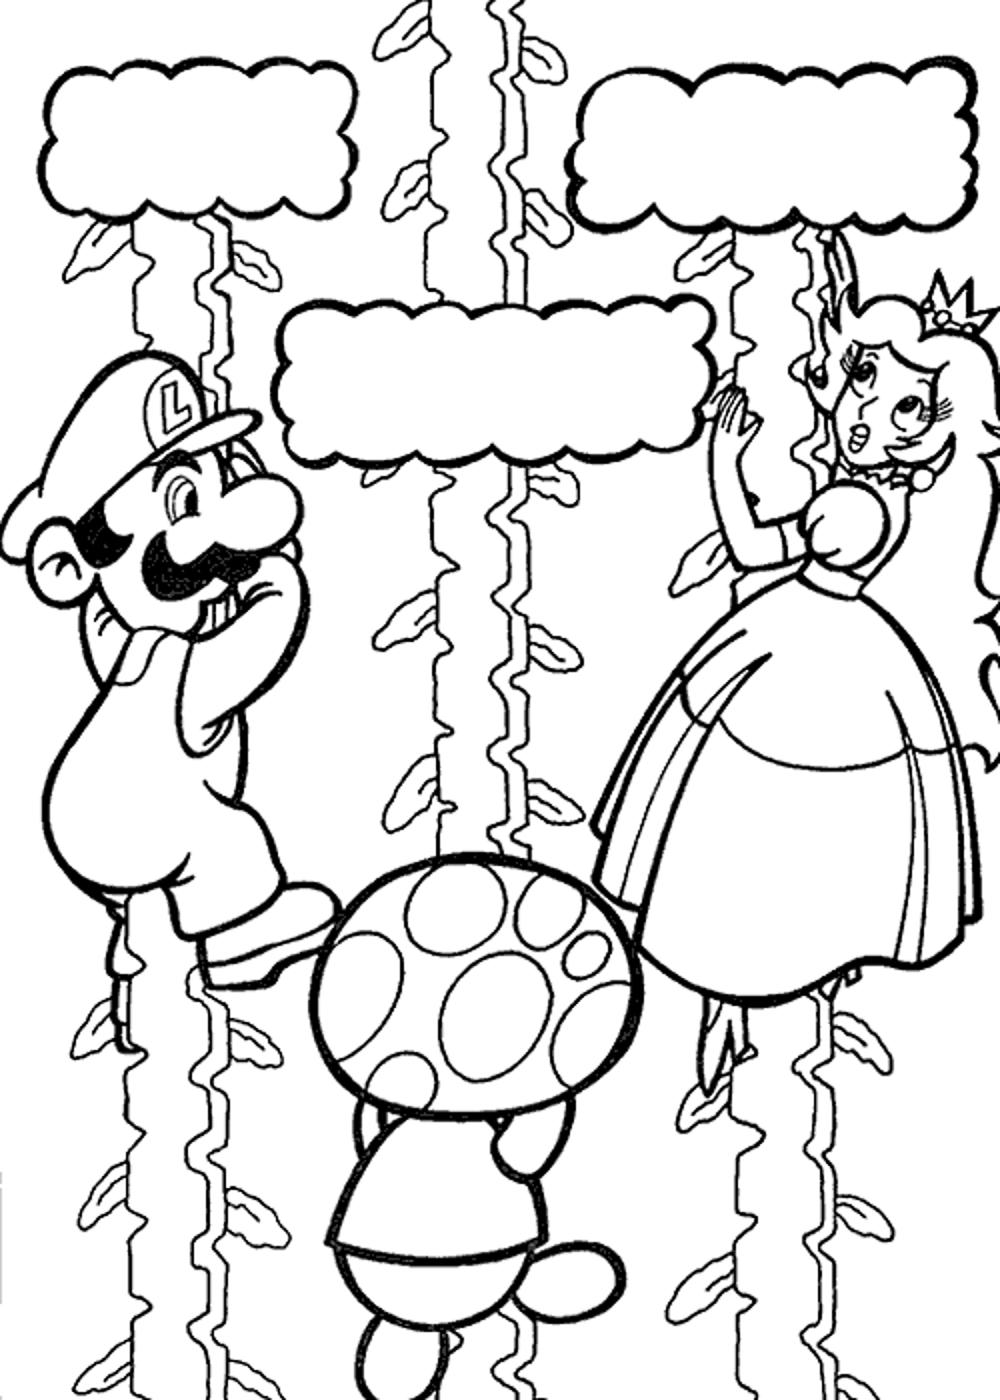 Mario and luigi coloring pages printable - Super Mario Galaxy Coloring Pages